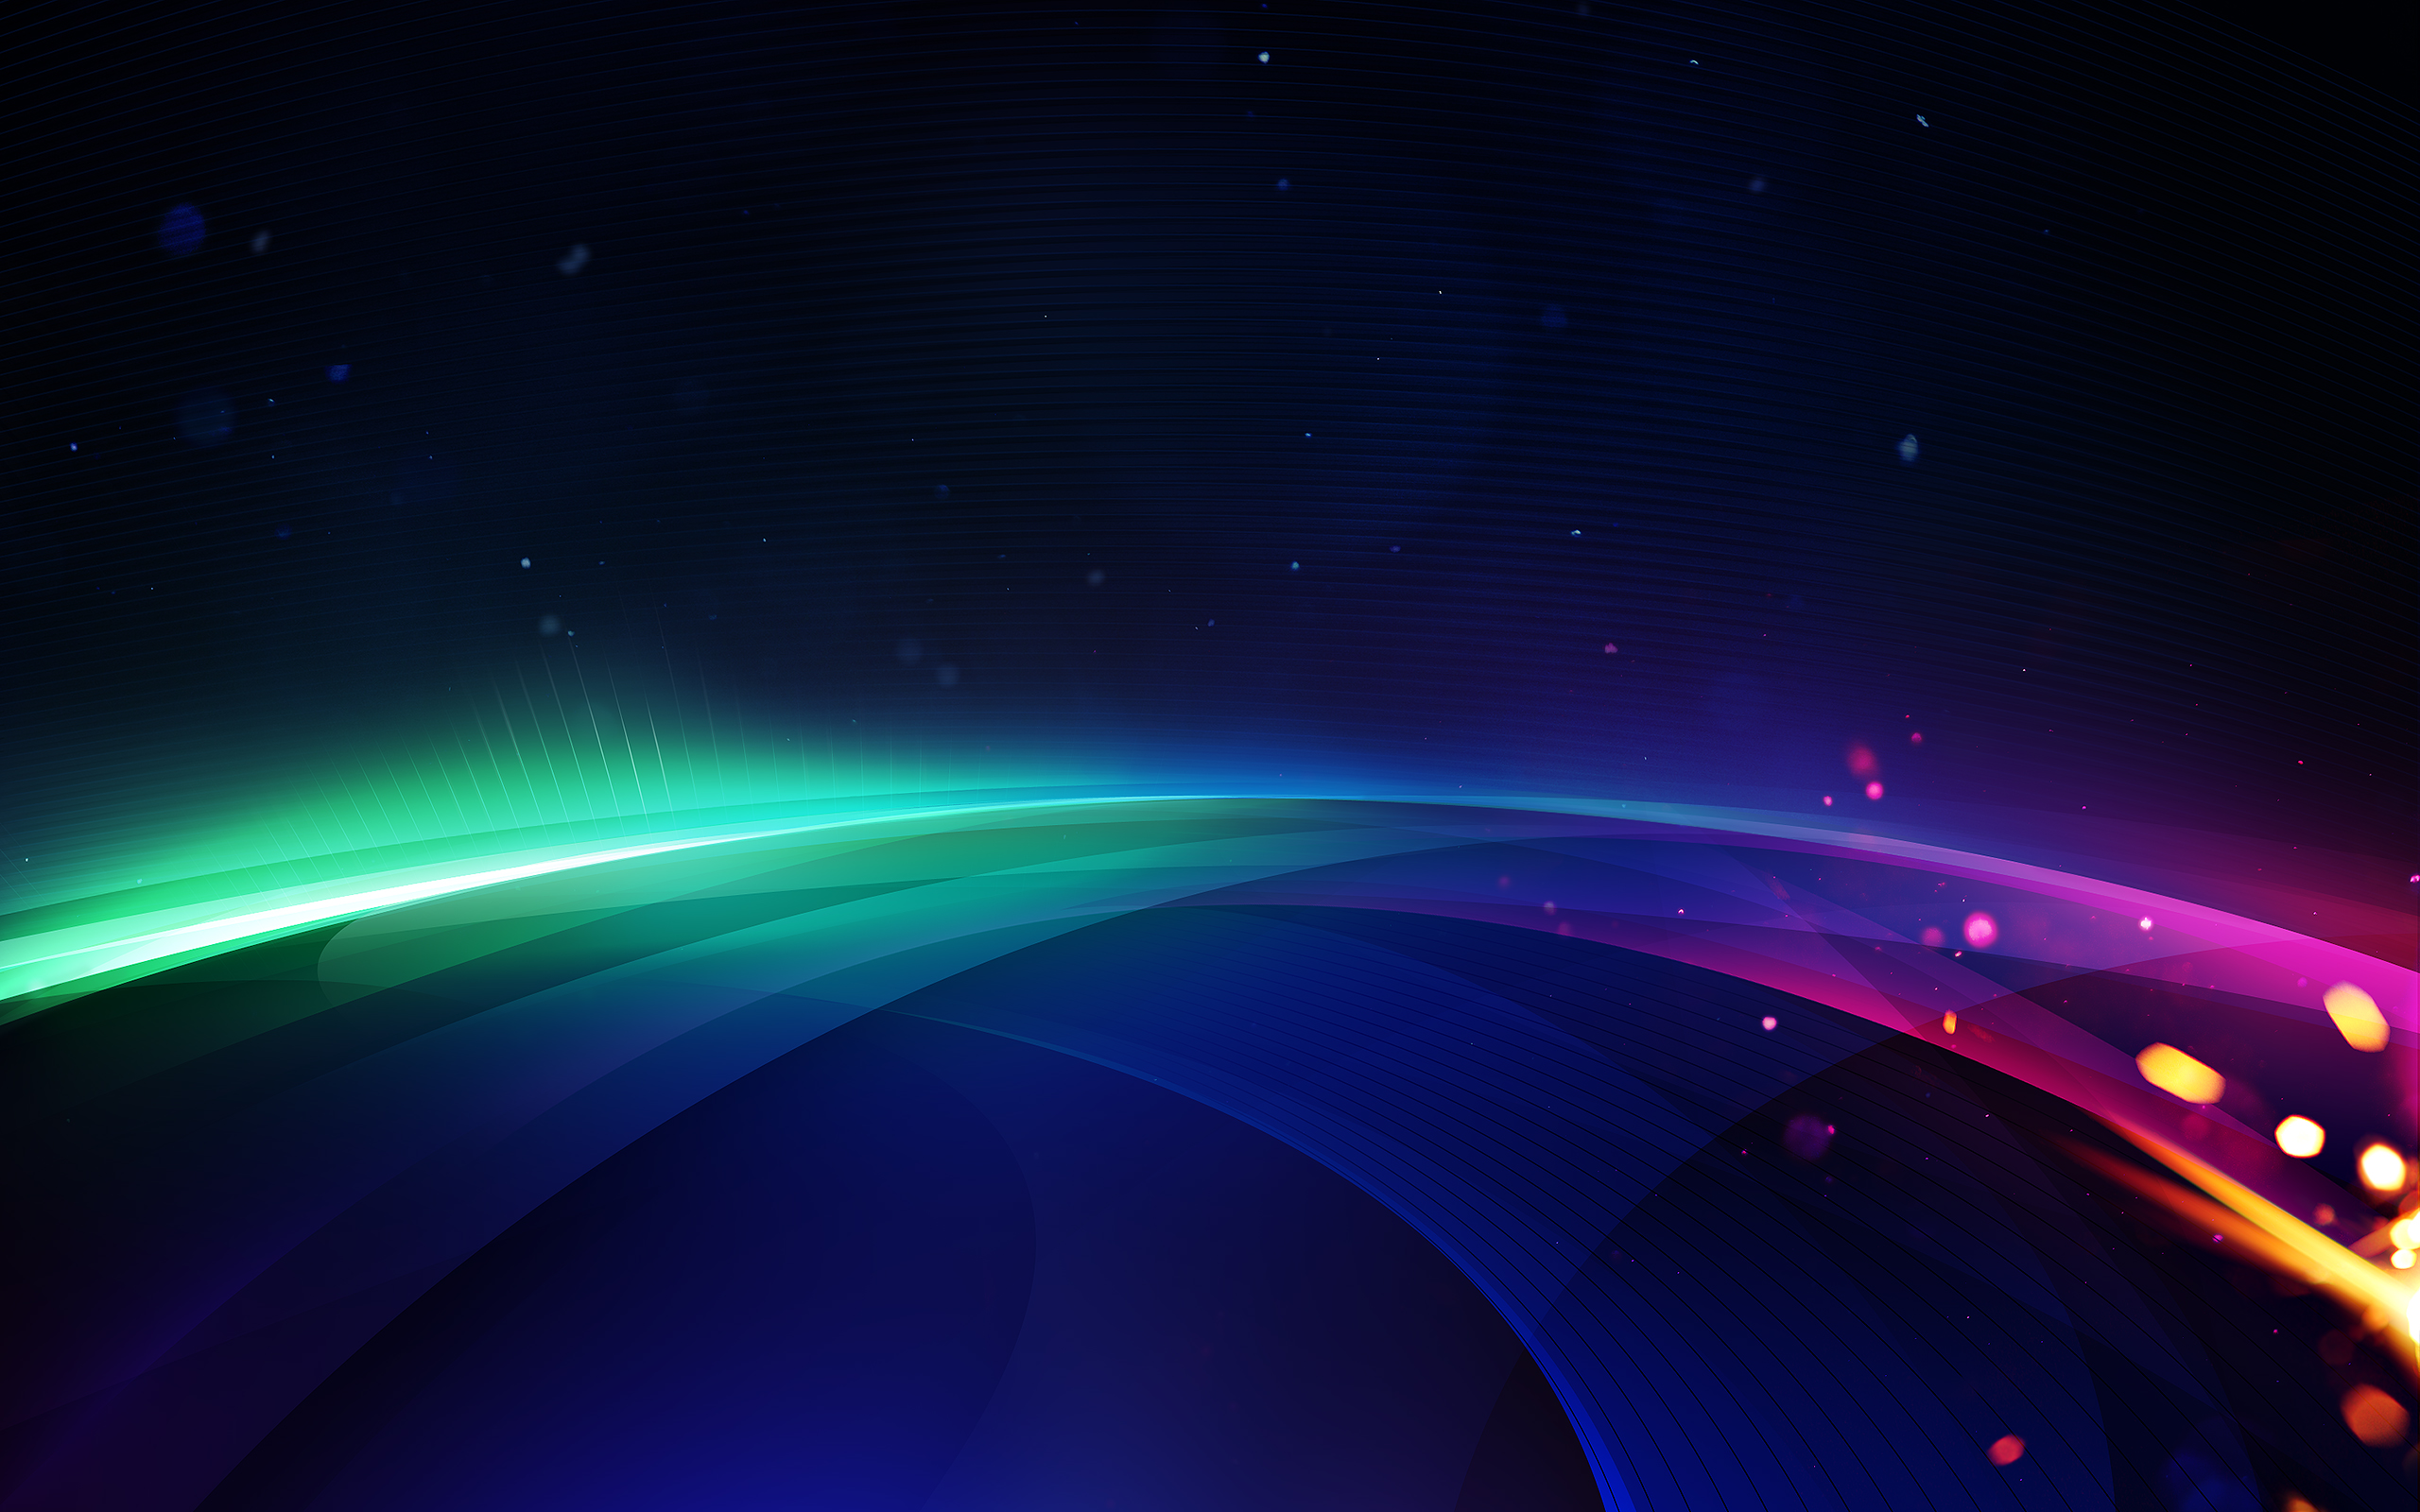 Windows 8 theme wallpapers and images   wallpapers 2560x1600